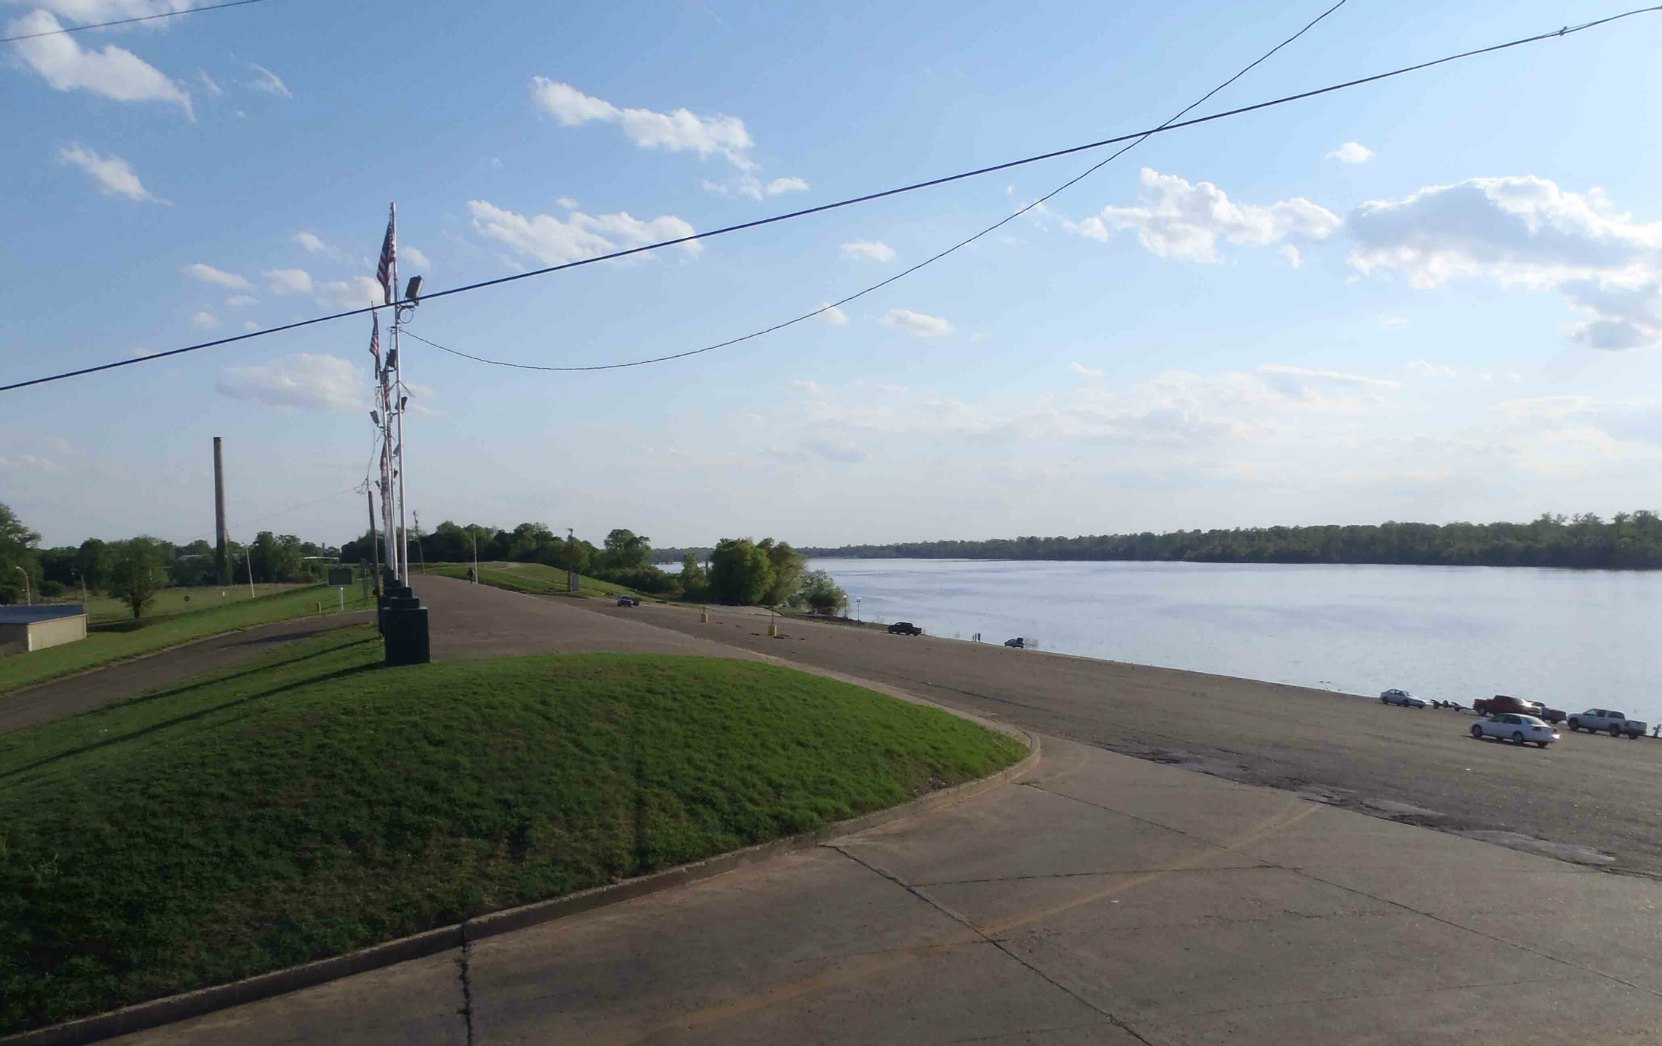 The top of the Mississippi River levee at Greenville, Mississippi. The cars on the right of the photo give an indication of the height of the levee at Greenville.